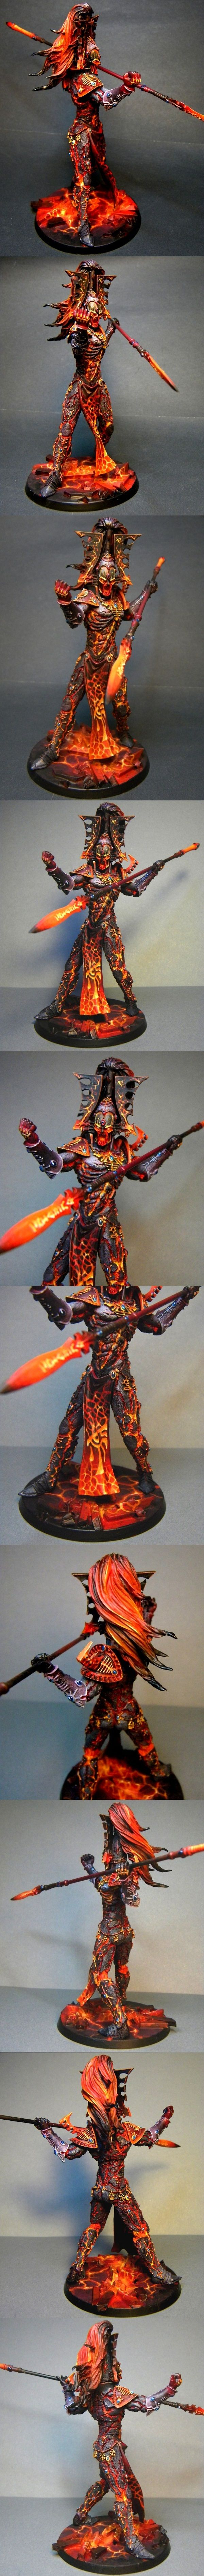 Warhammer 40k Eldar Avatar -The War God of the Eldar. This is an especially good example of a painted Forgeworld Model of the Avatar